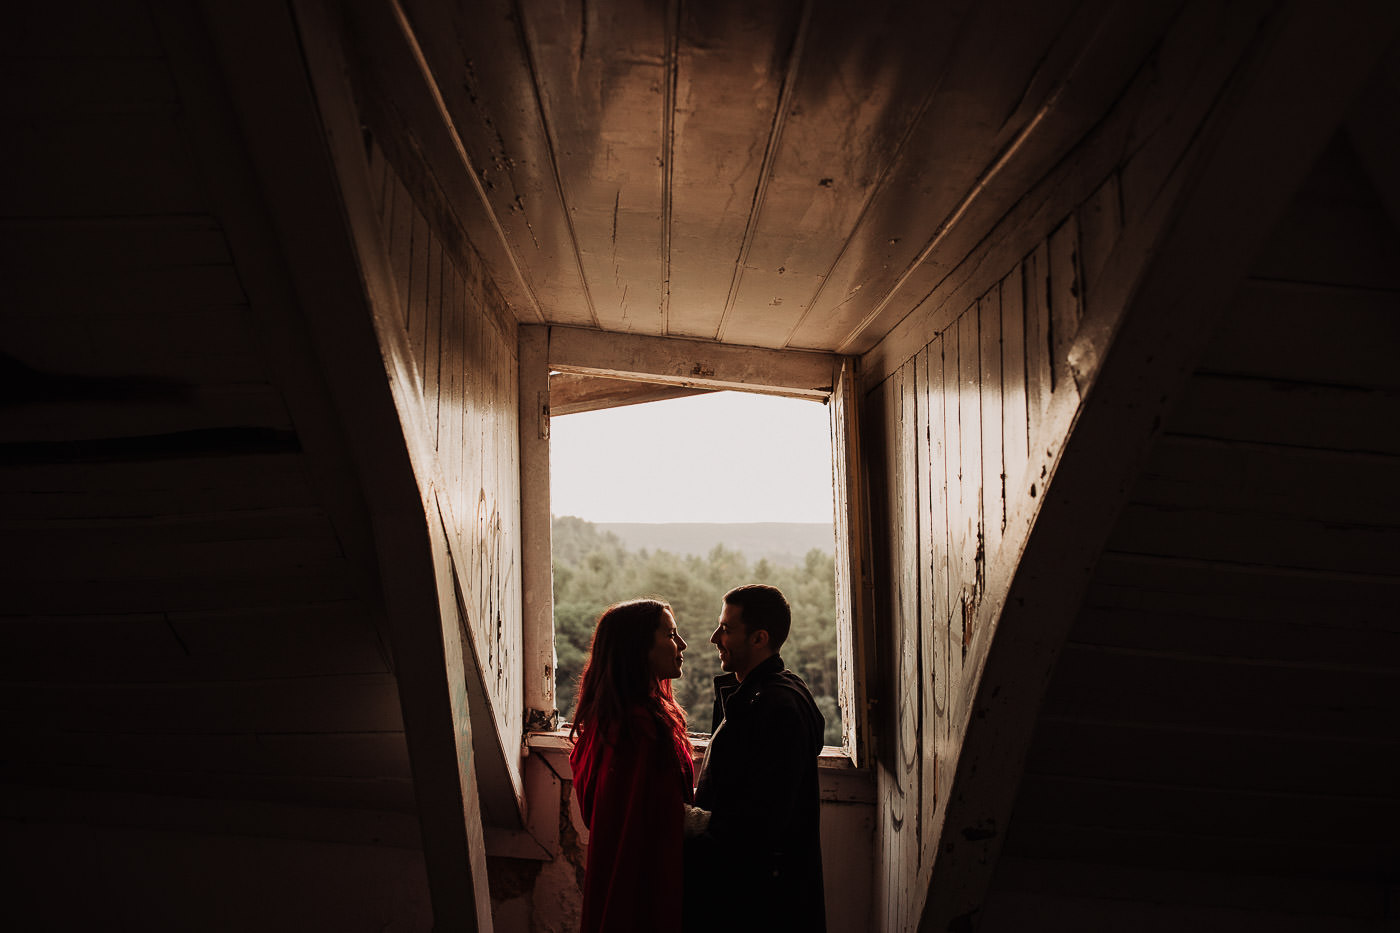 engagement-session_setubal_serra-arrabida_beach_abandoned-house_couple_